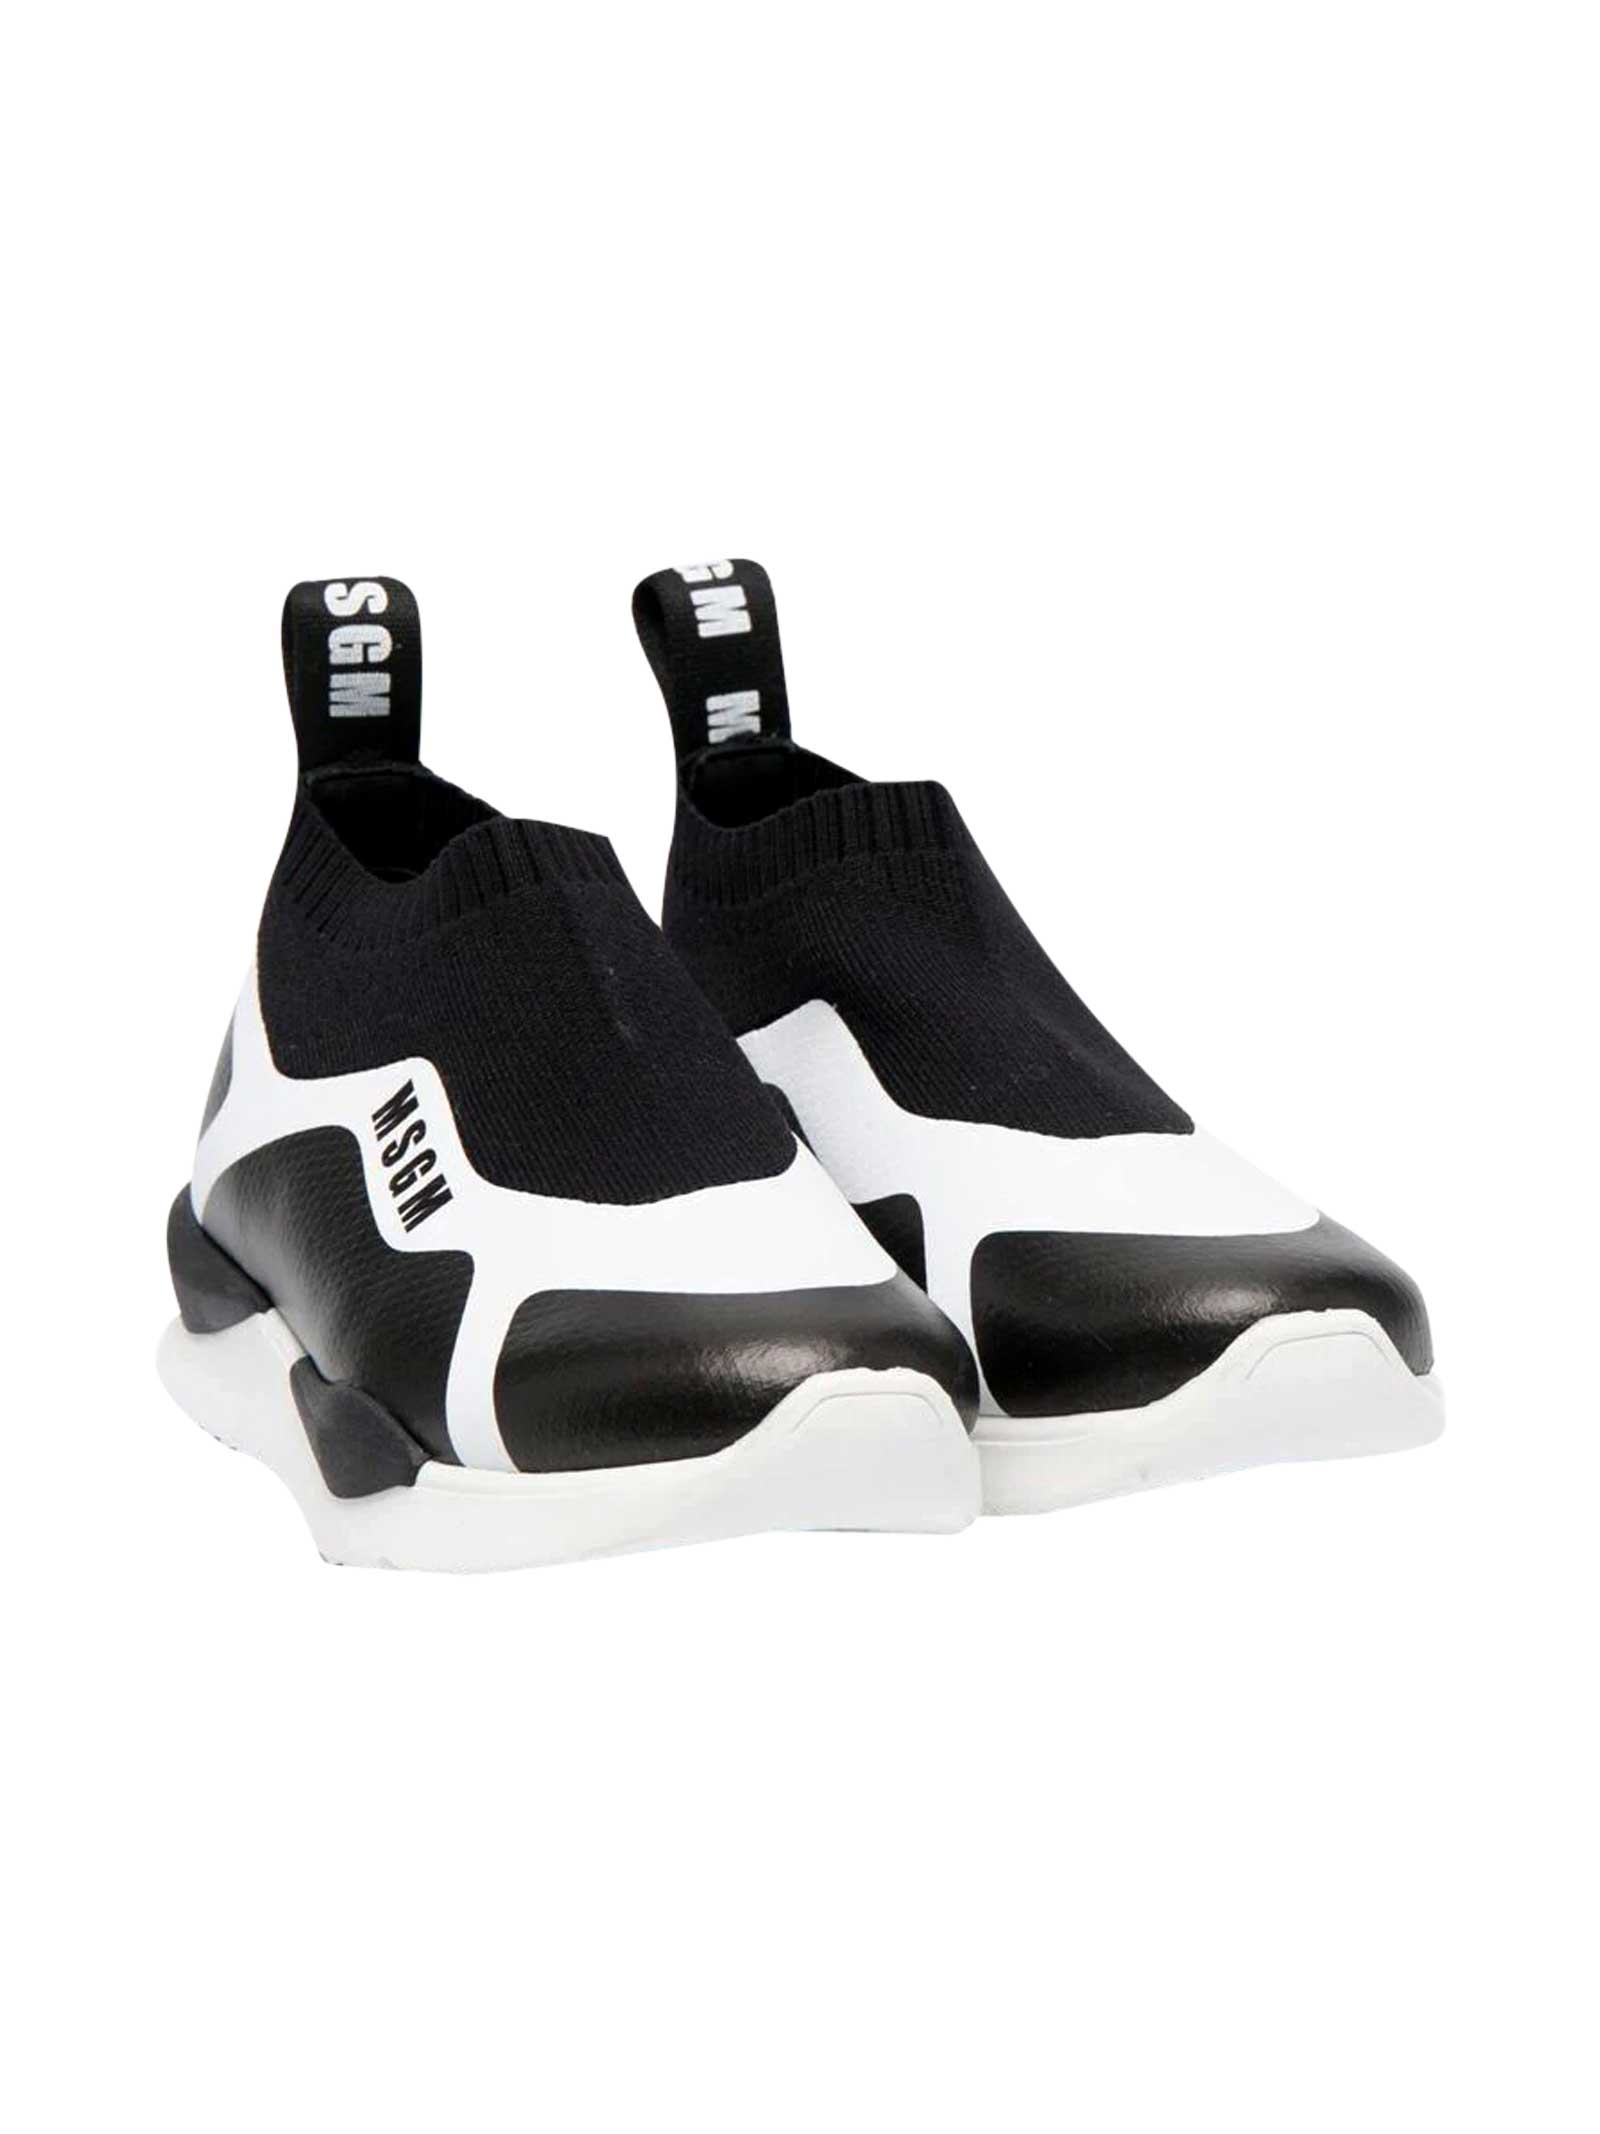 Msgm Sneakers BLACK AND WHITE TEEN SLIP-ON SNEAKERS